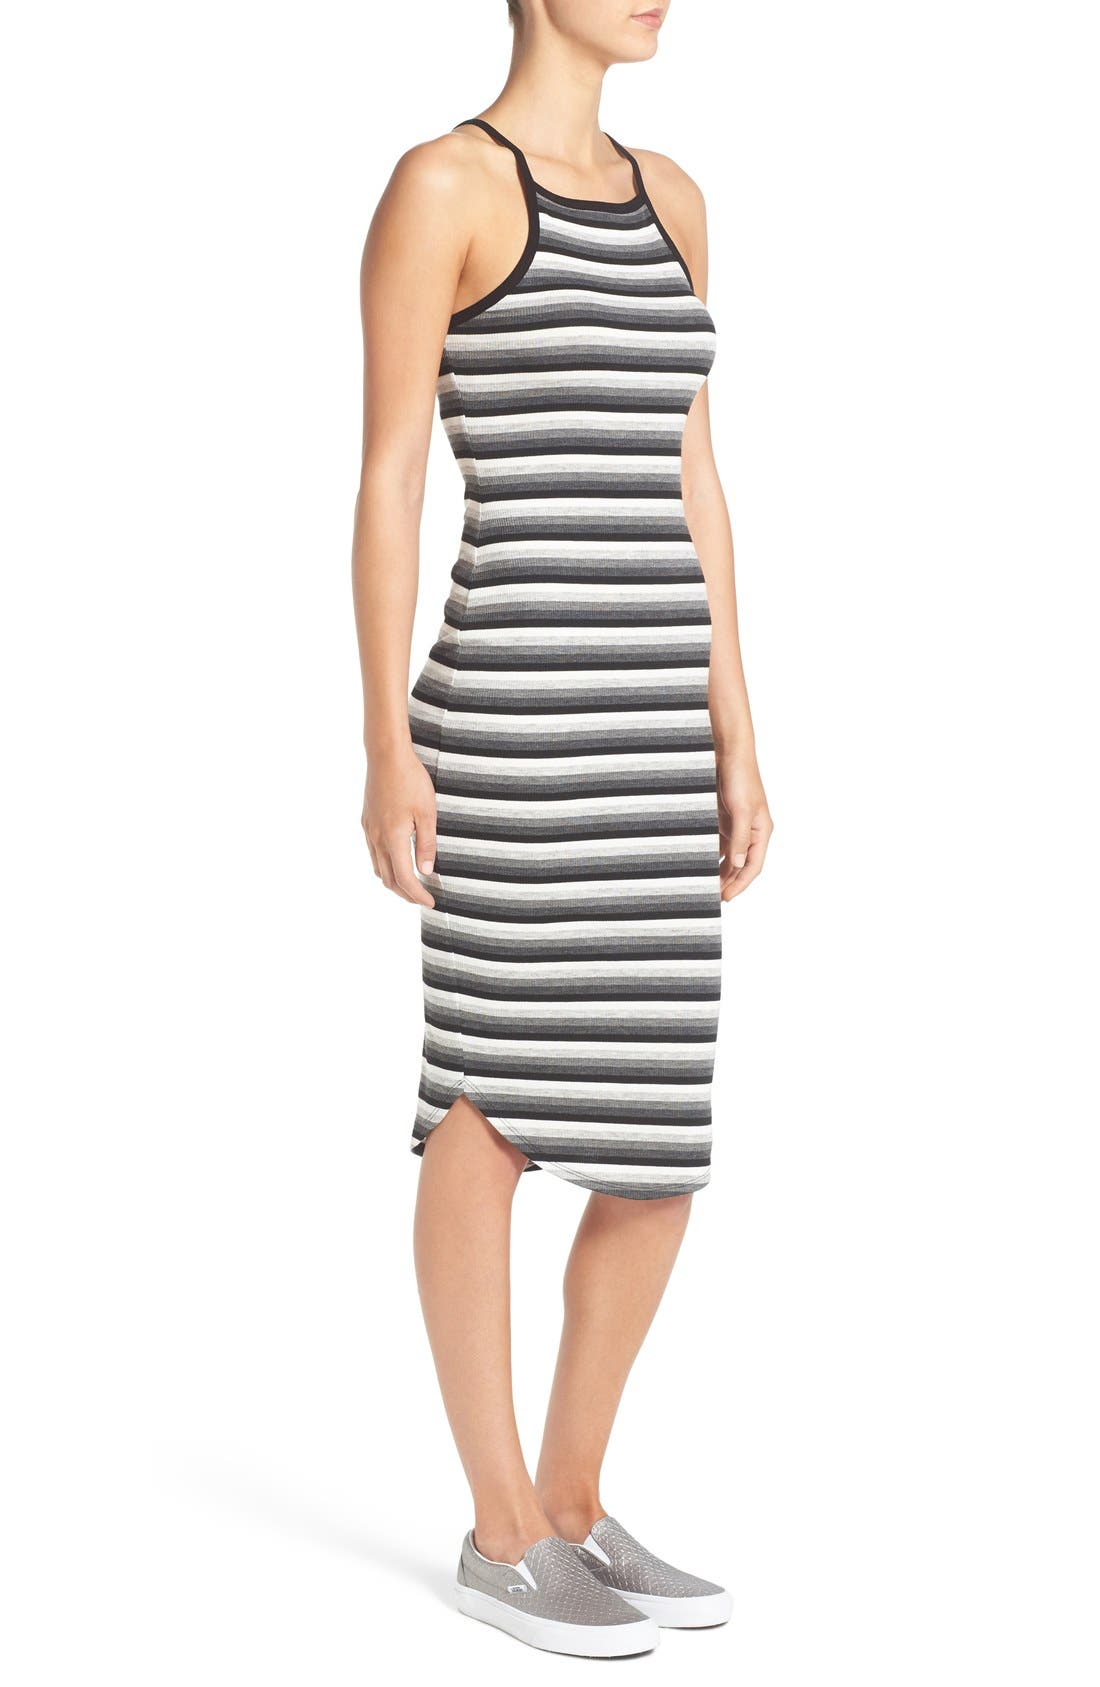 SOPRANO, Stripe Rib Knit Midi Dress, Alternate thumbnail 5, color, 001